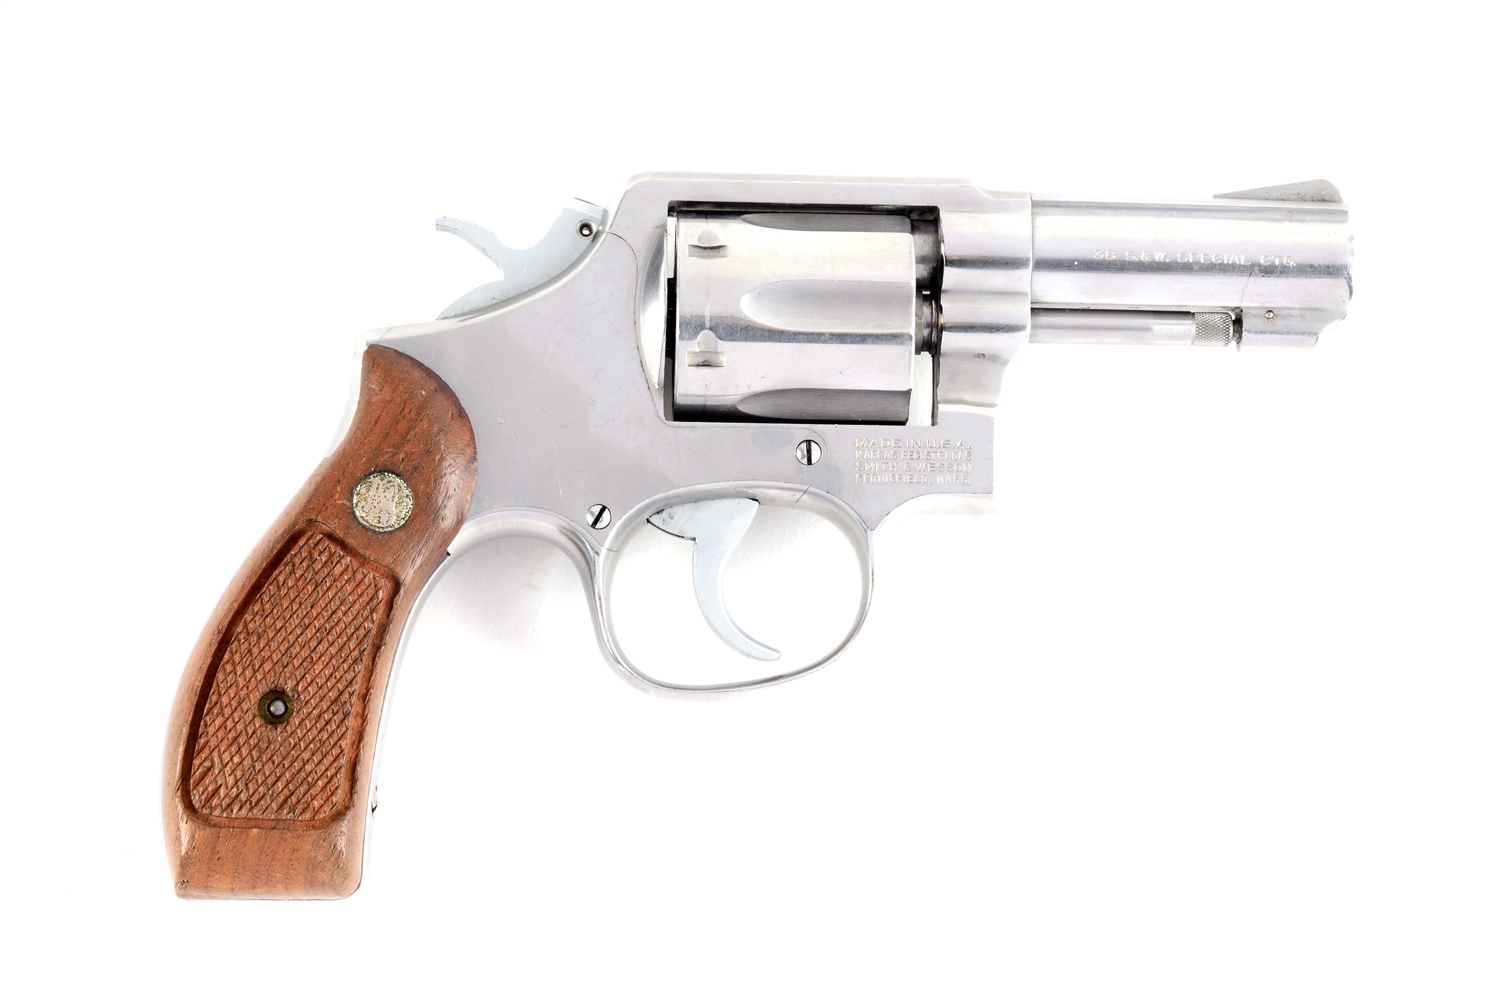 (M) S&W Model 64-3 Double Action Revolver.